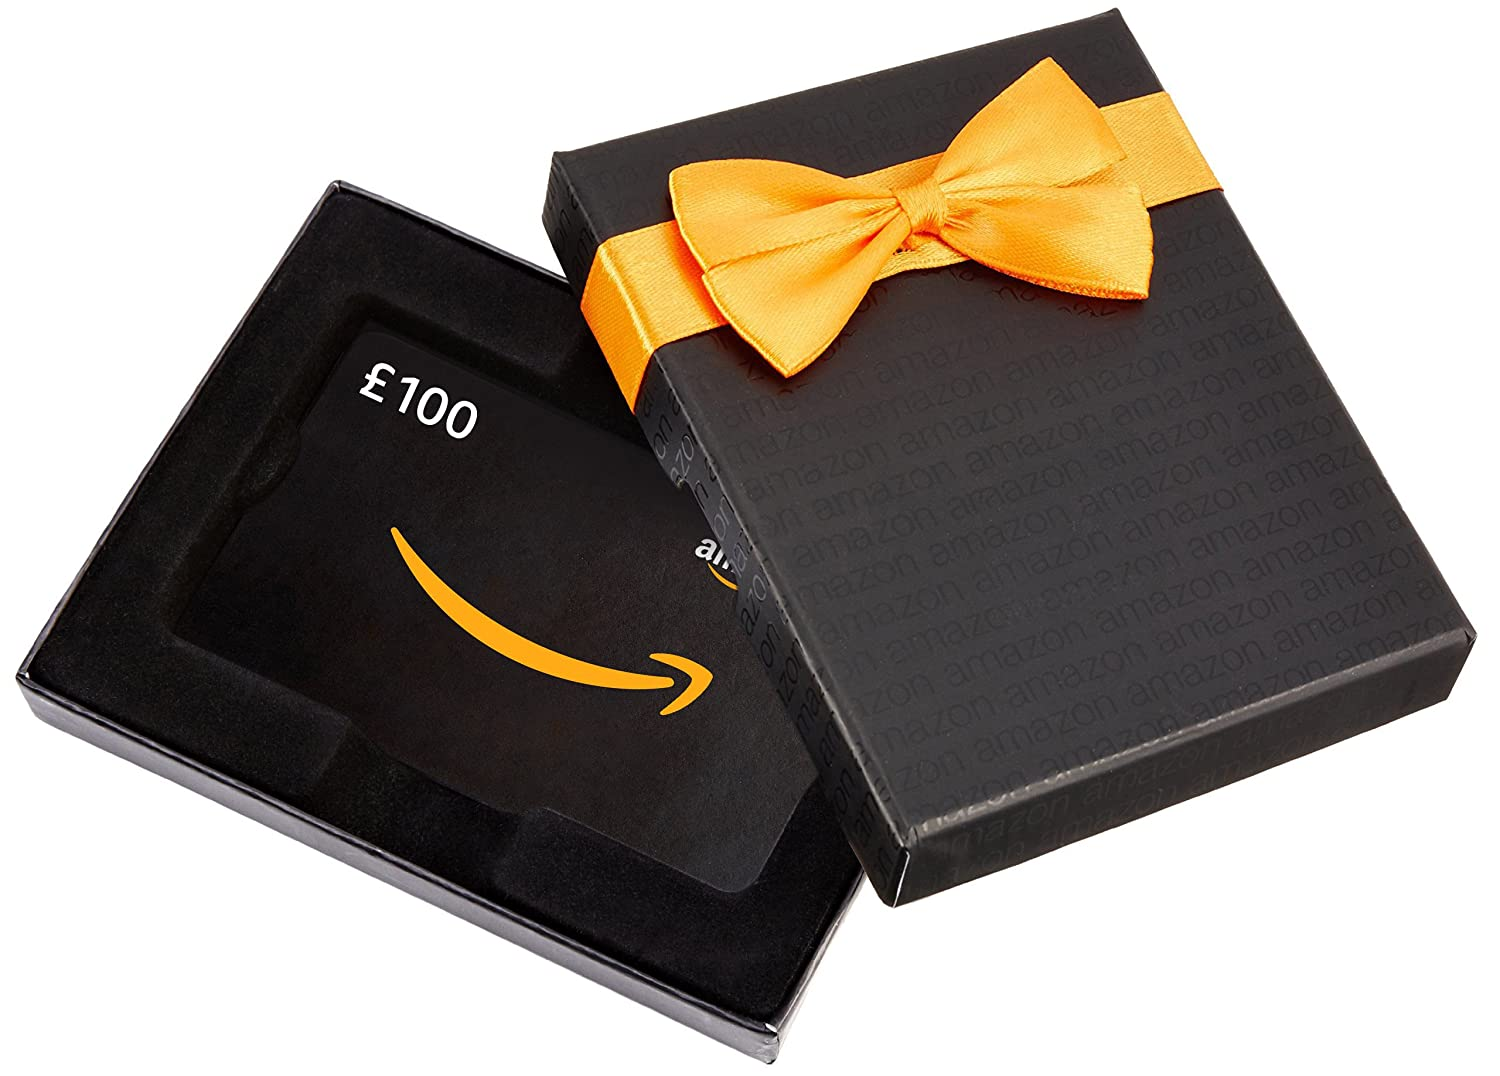 Amazon.co.uk Gift Card in a Black Gift Box - FREE One-Day Delivery Amazon EU S.à.r.l. Fixed